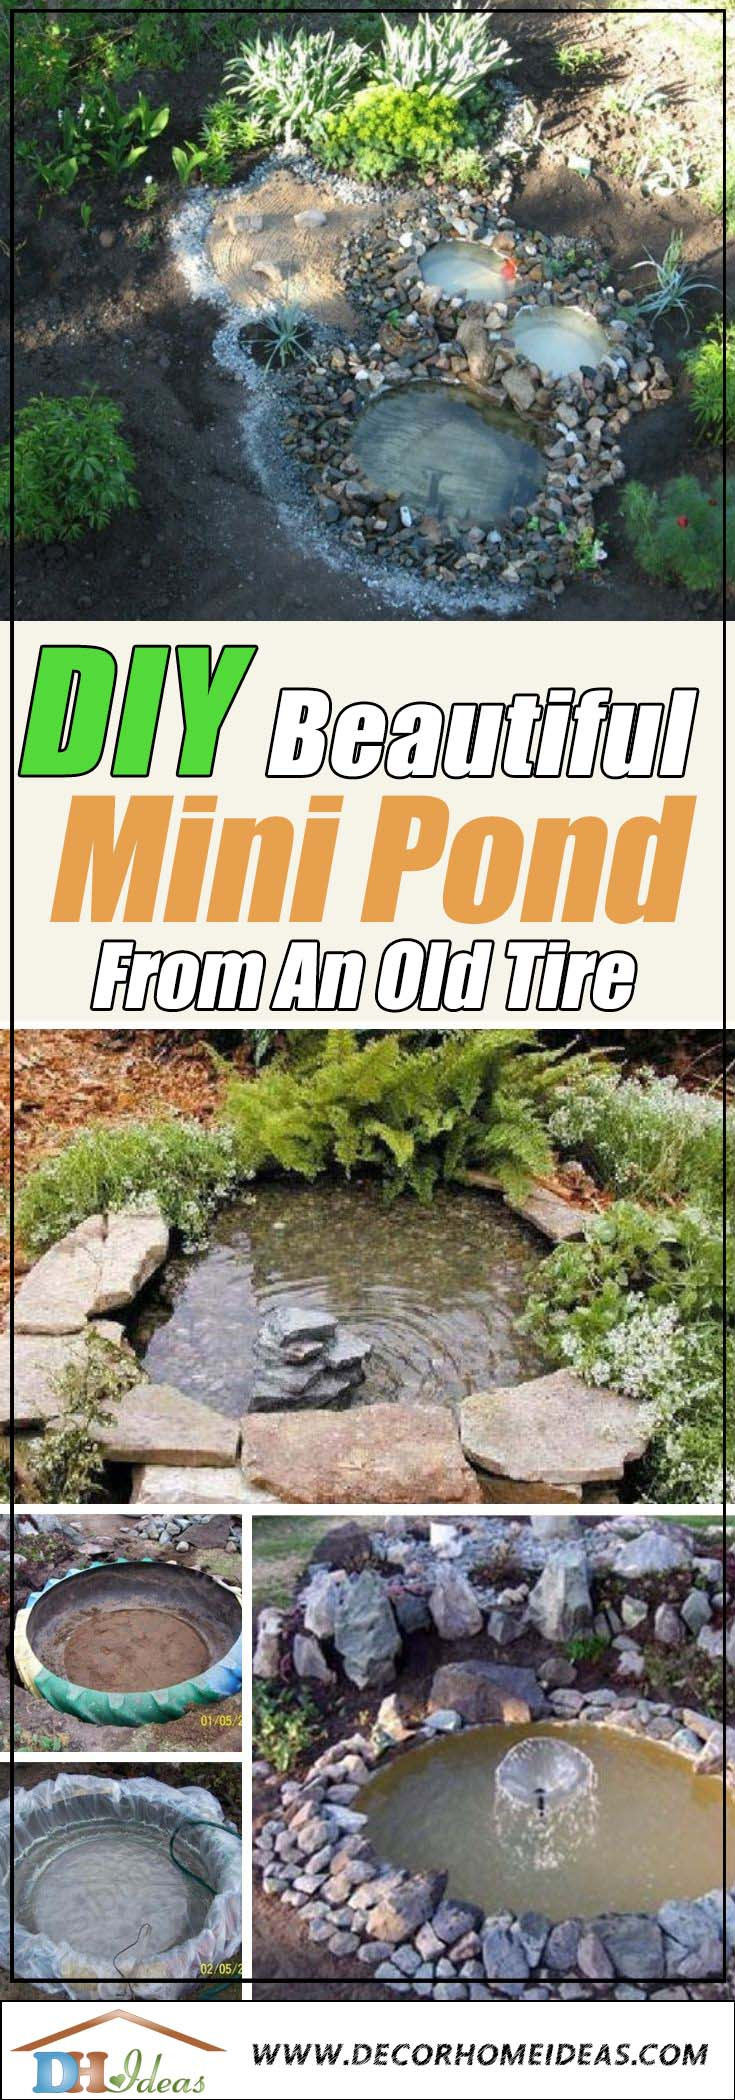 How To DIY Mini Pond From an Old Tire #garden #pond #decorhomeideas